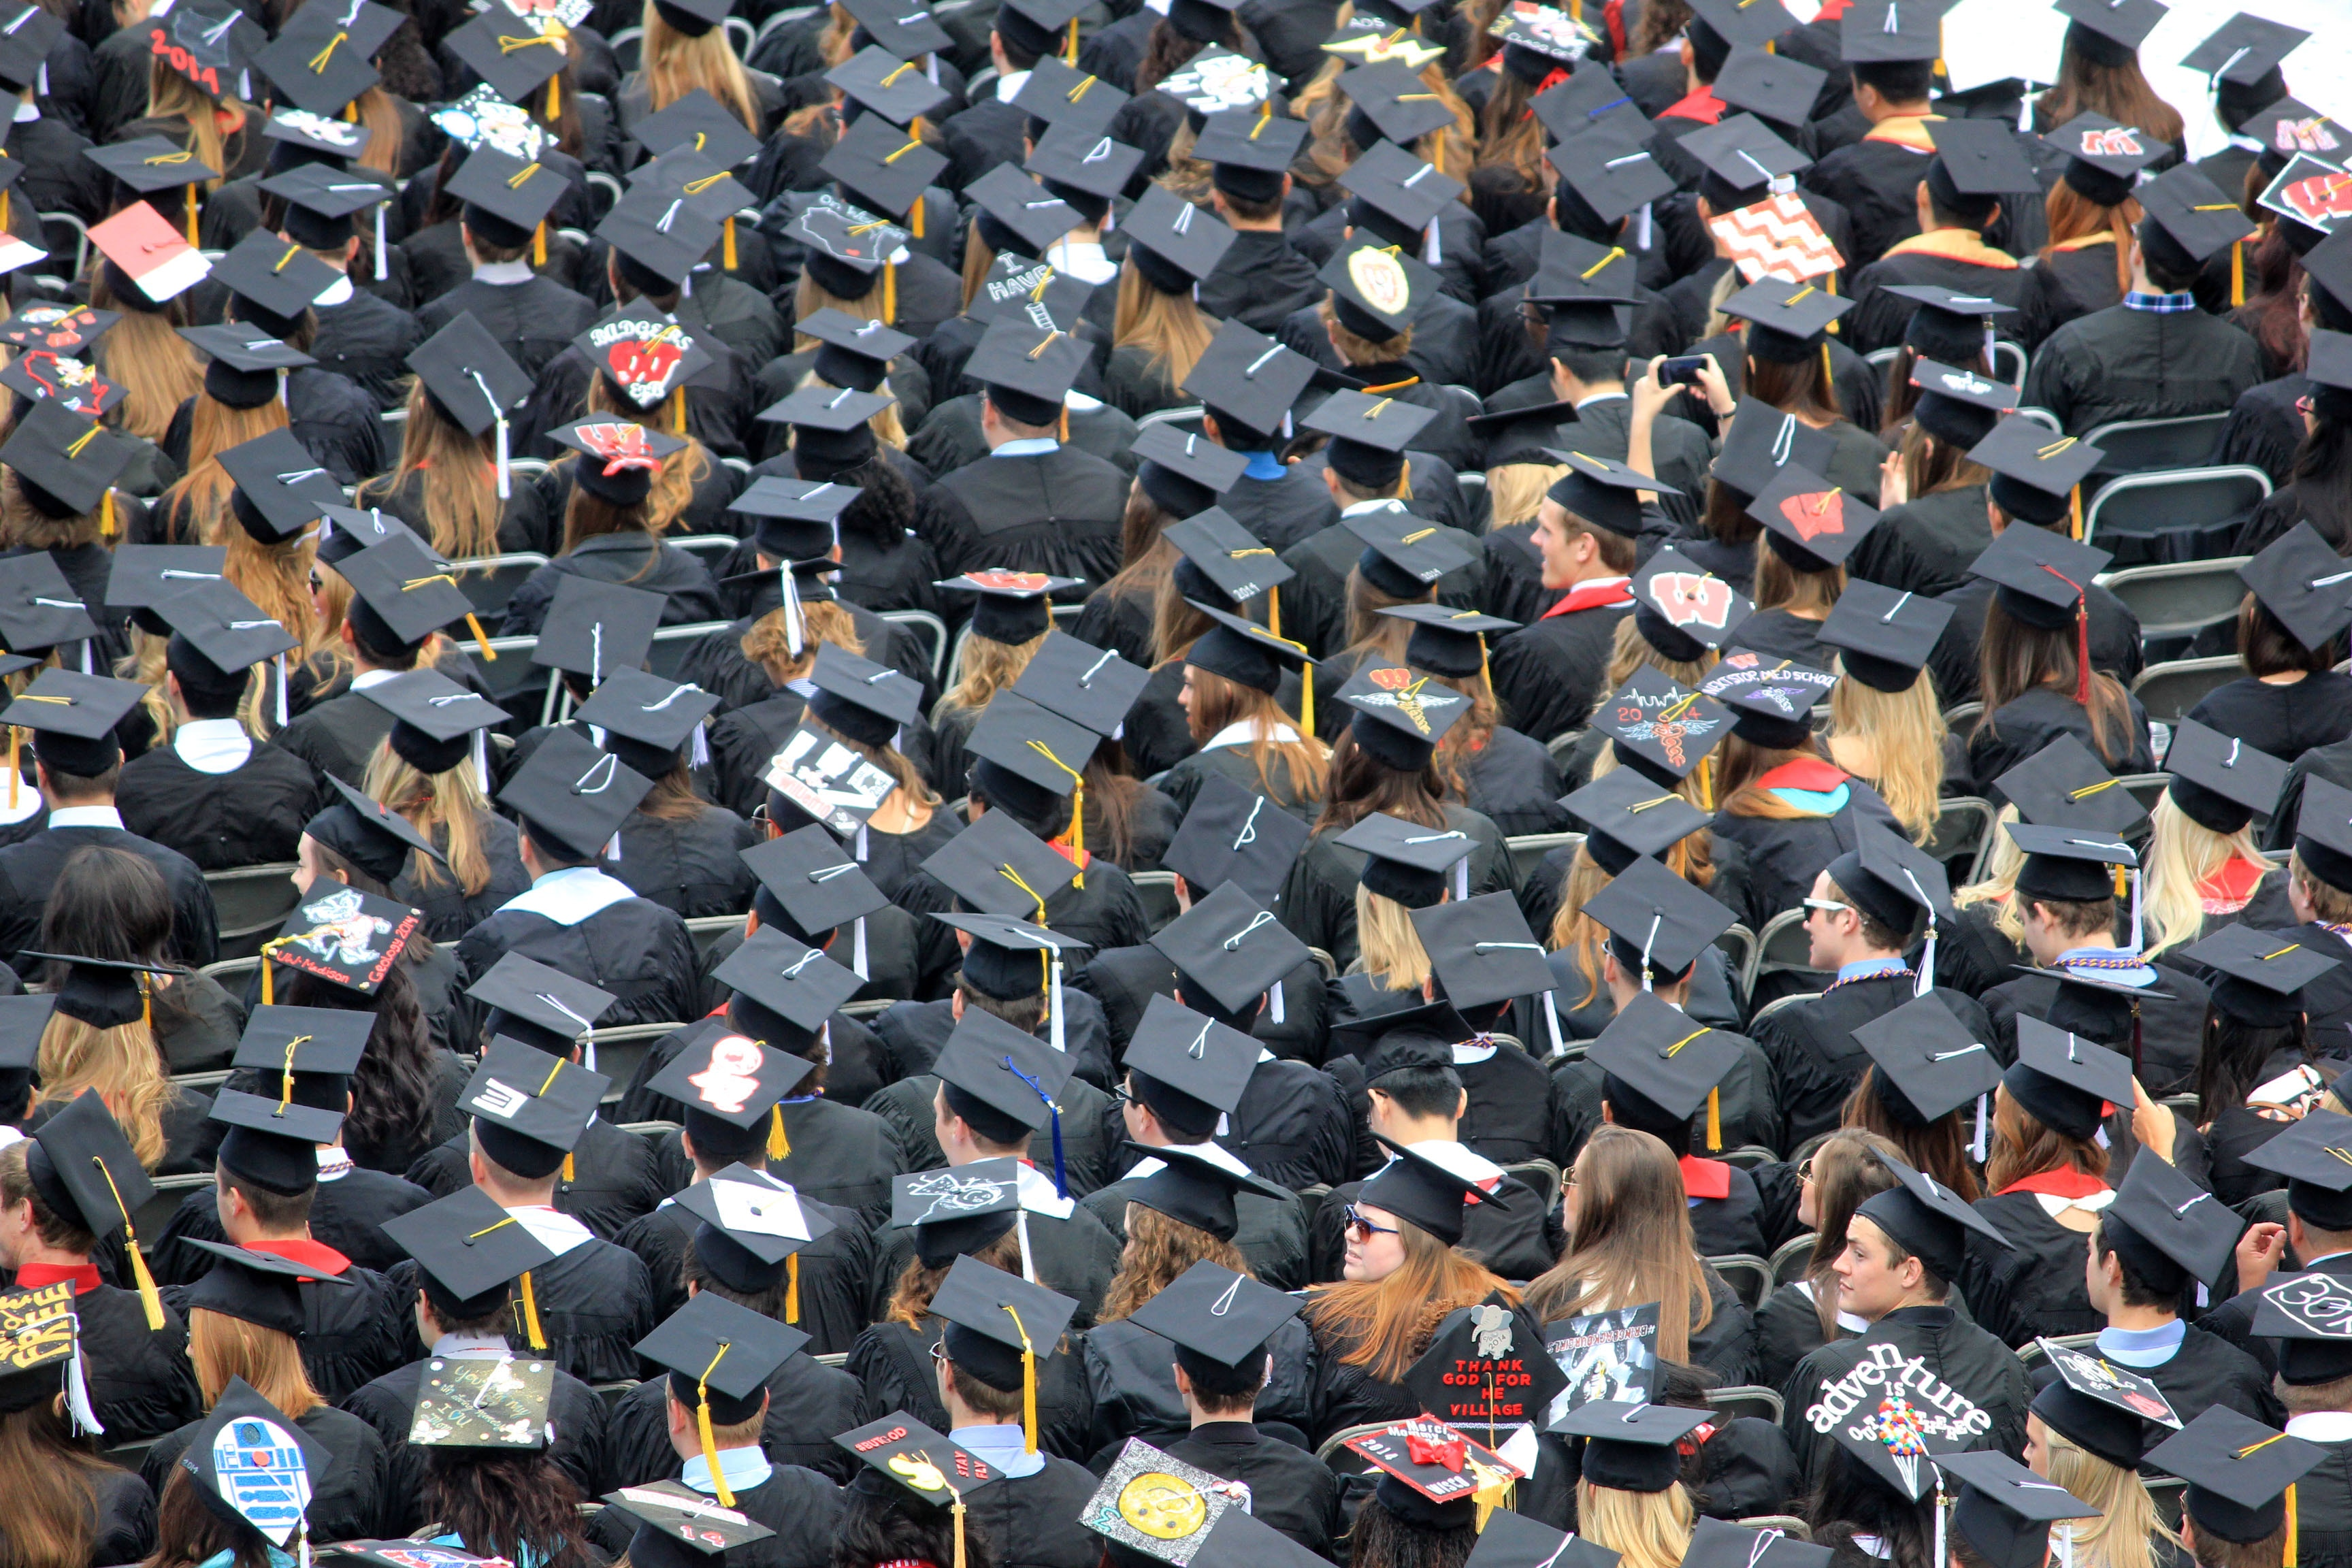 A sea of college or university graduates in caps and gowns on graduation day